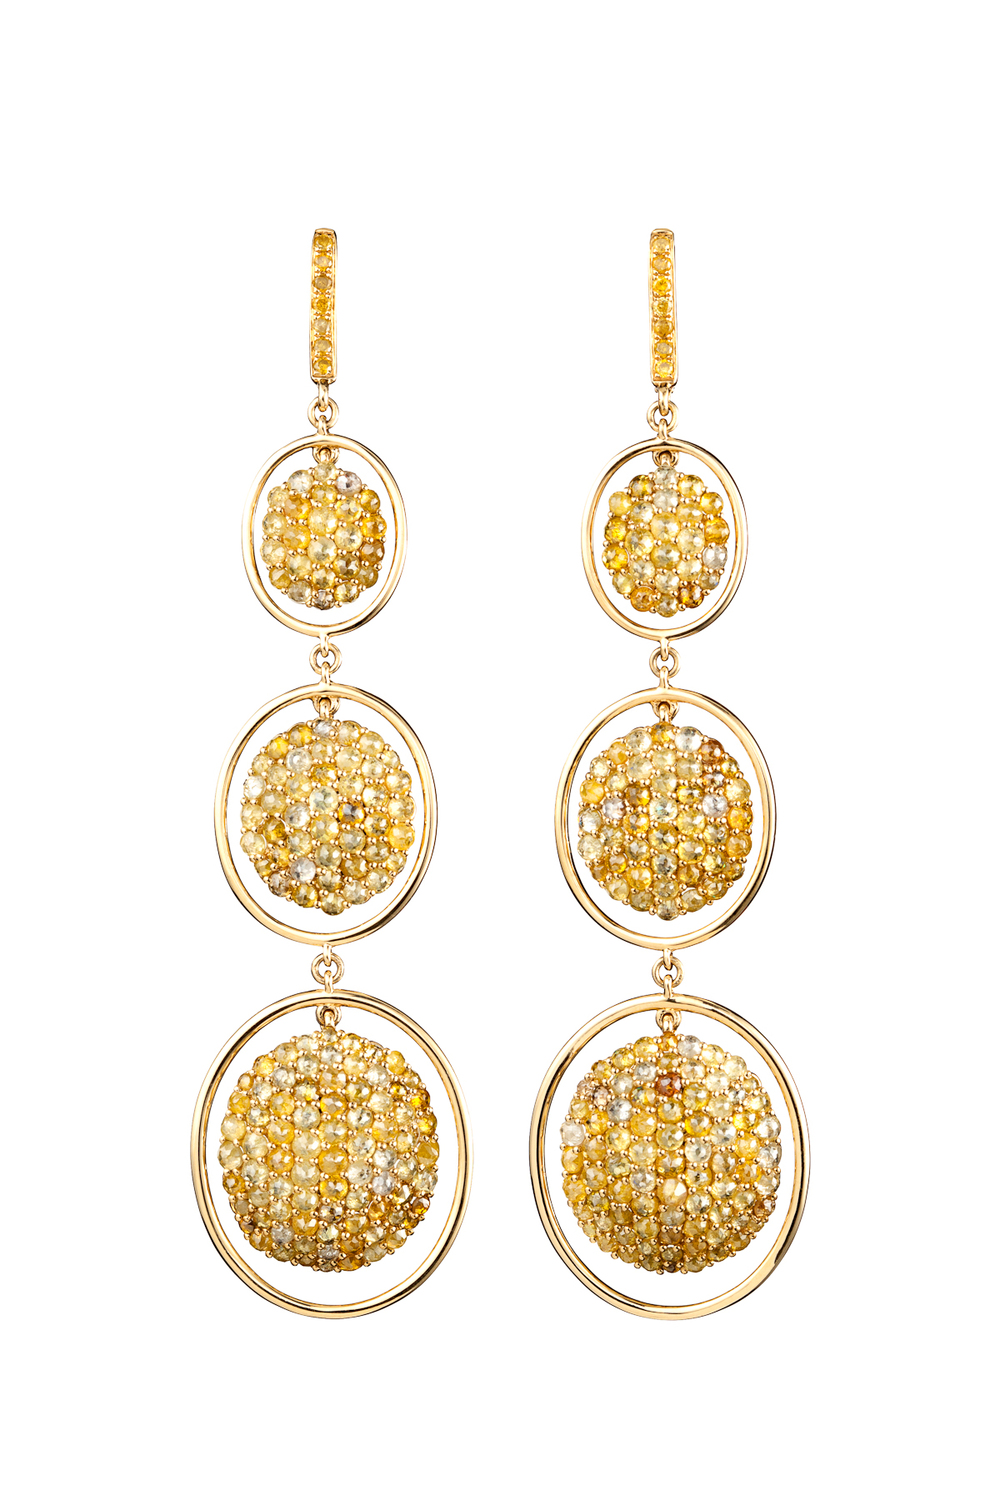 Three drop Fancy Cut Yellow Diamond Earrings in 18kt Yellow Gold.